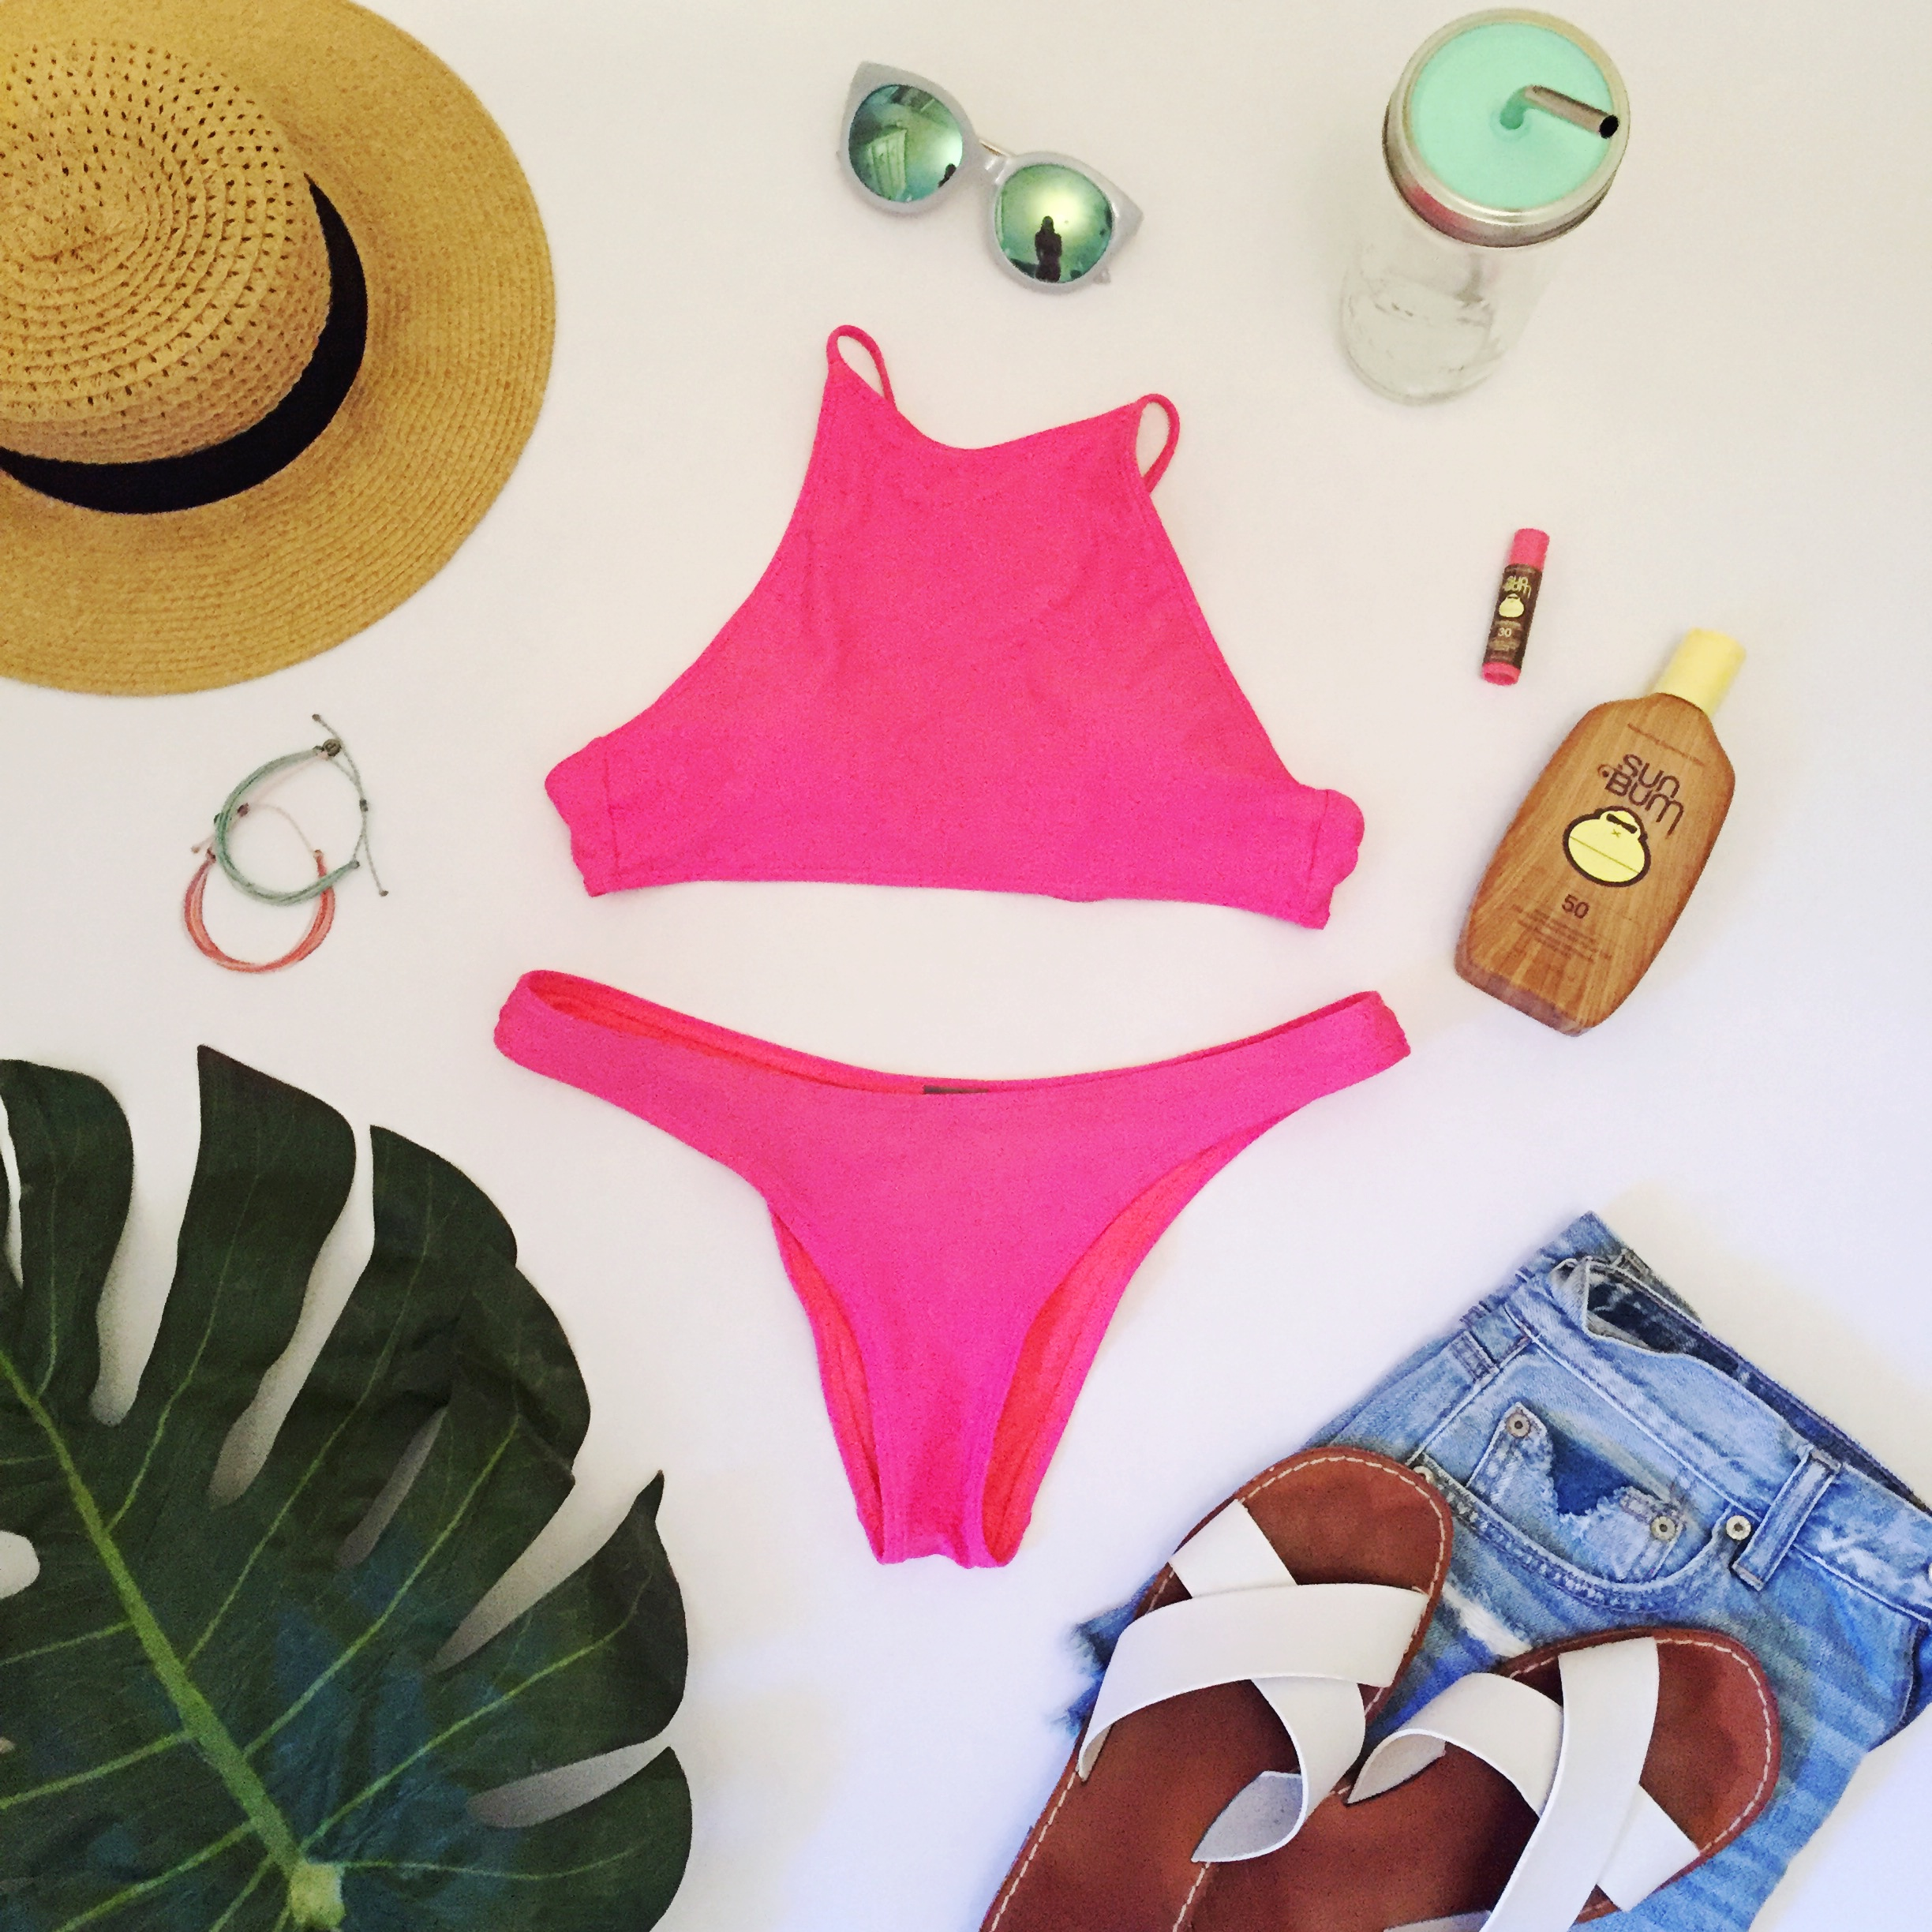 7 Items to Pack In Your Summer Beach Bag